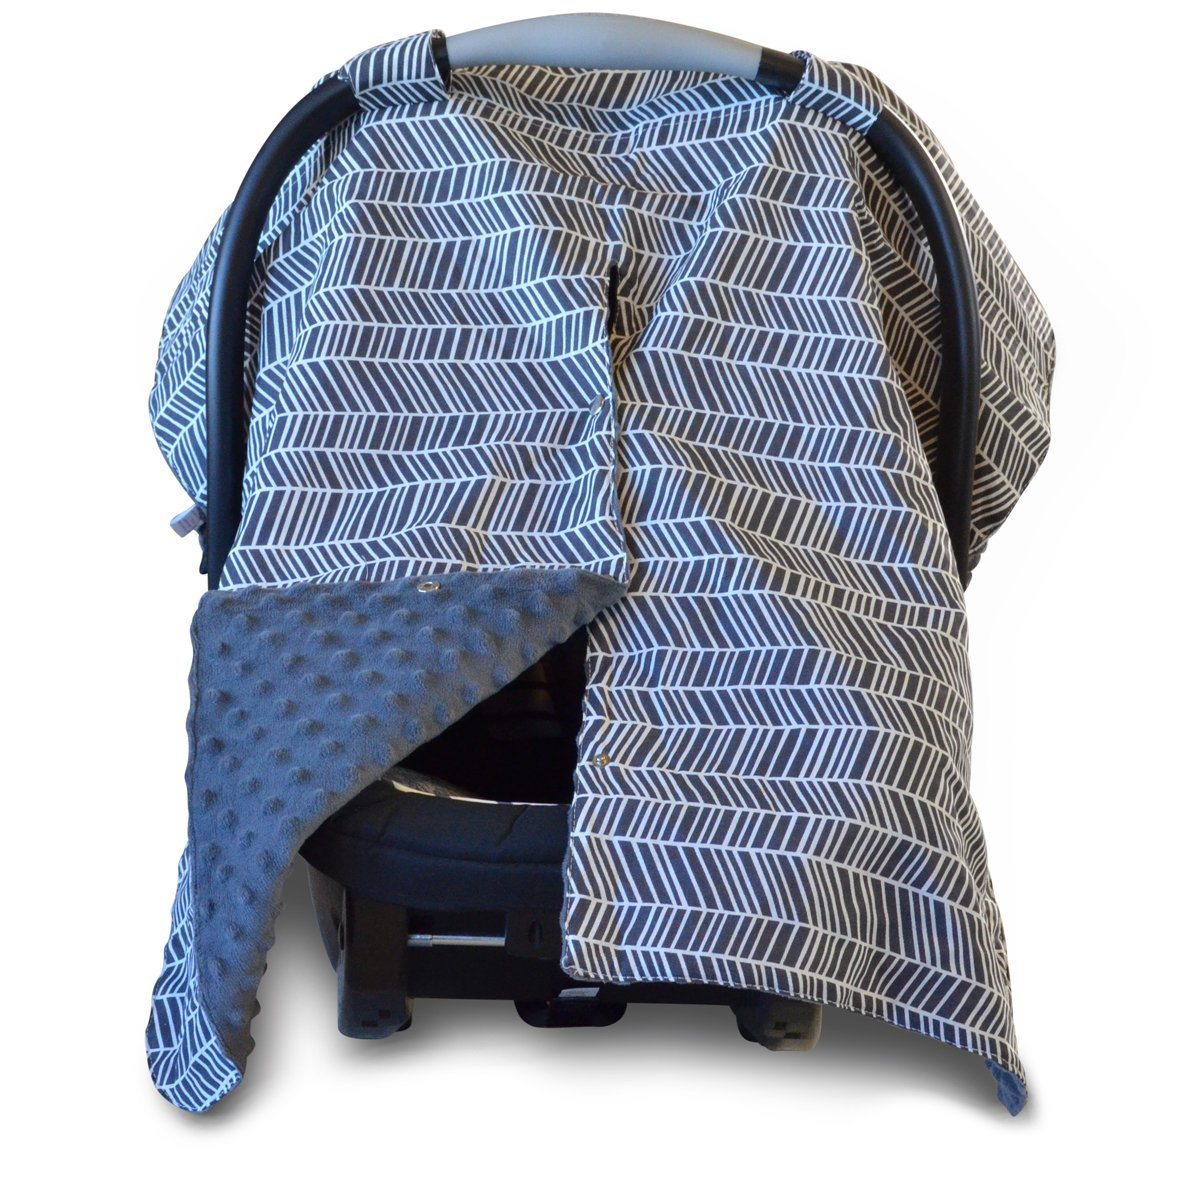 2 in 1 Carseat Canopy and Nursing Cover Up with Peekaboo Opening | Large Infant Car Seat Canopy for Girl or Boy | Best Baby Shower Gift for Breastfeeding Moms | Grey Herringbone Pattern and Blue Minky Kids N' Such HERRINGBONE-BLUE